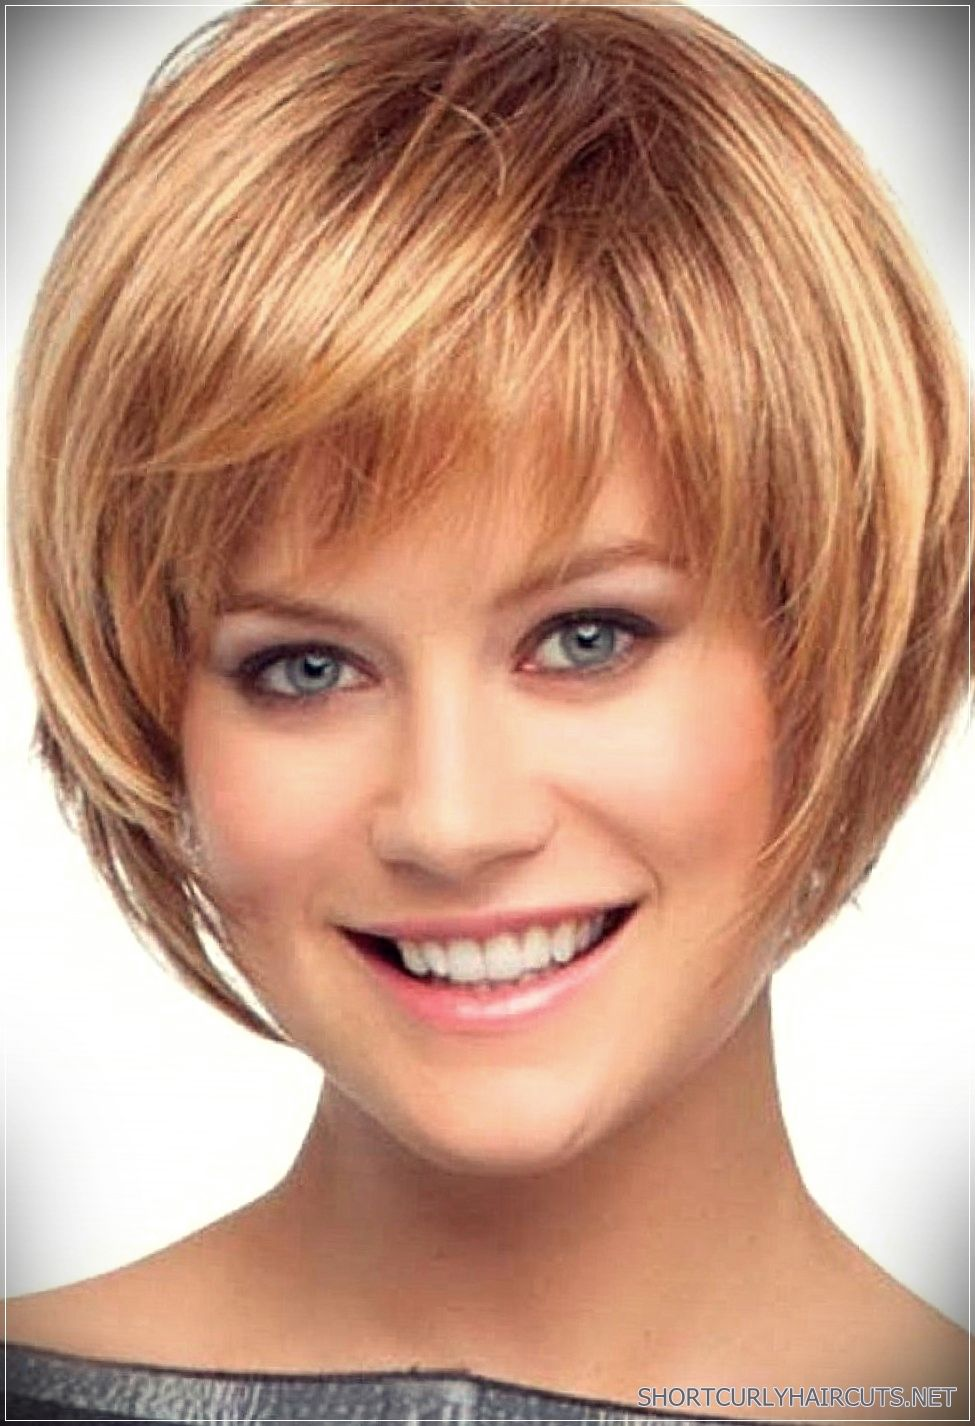 10 Gorgeous Hairstyles For Women With Thin Hair 10 Gorgeous Hairstyles For Women With Thin Hair new picture